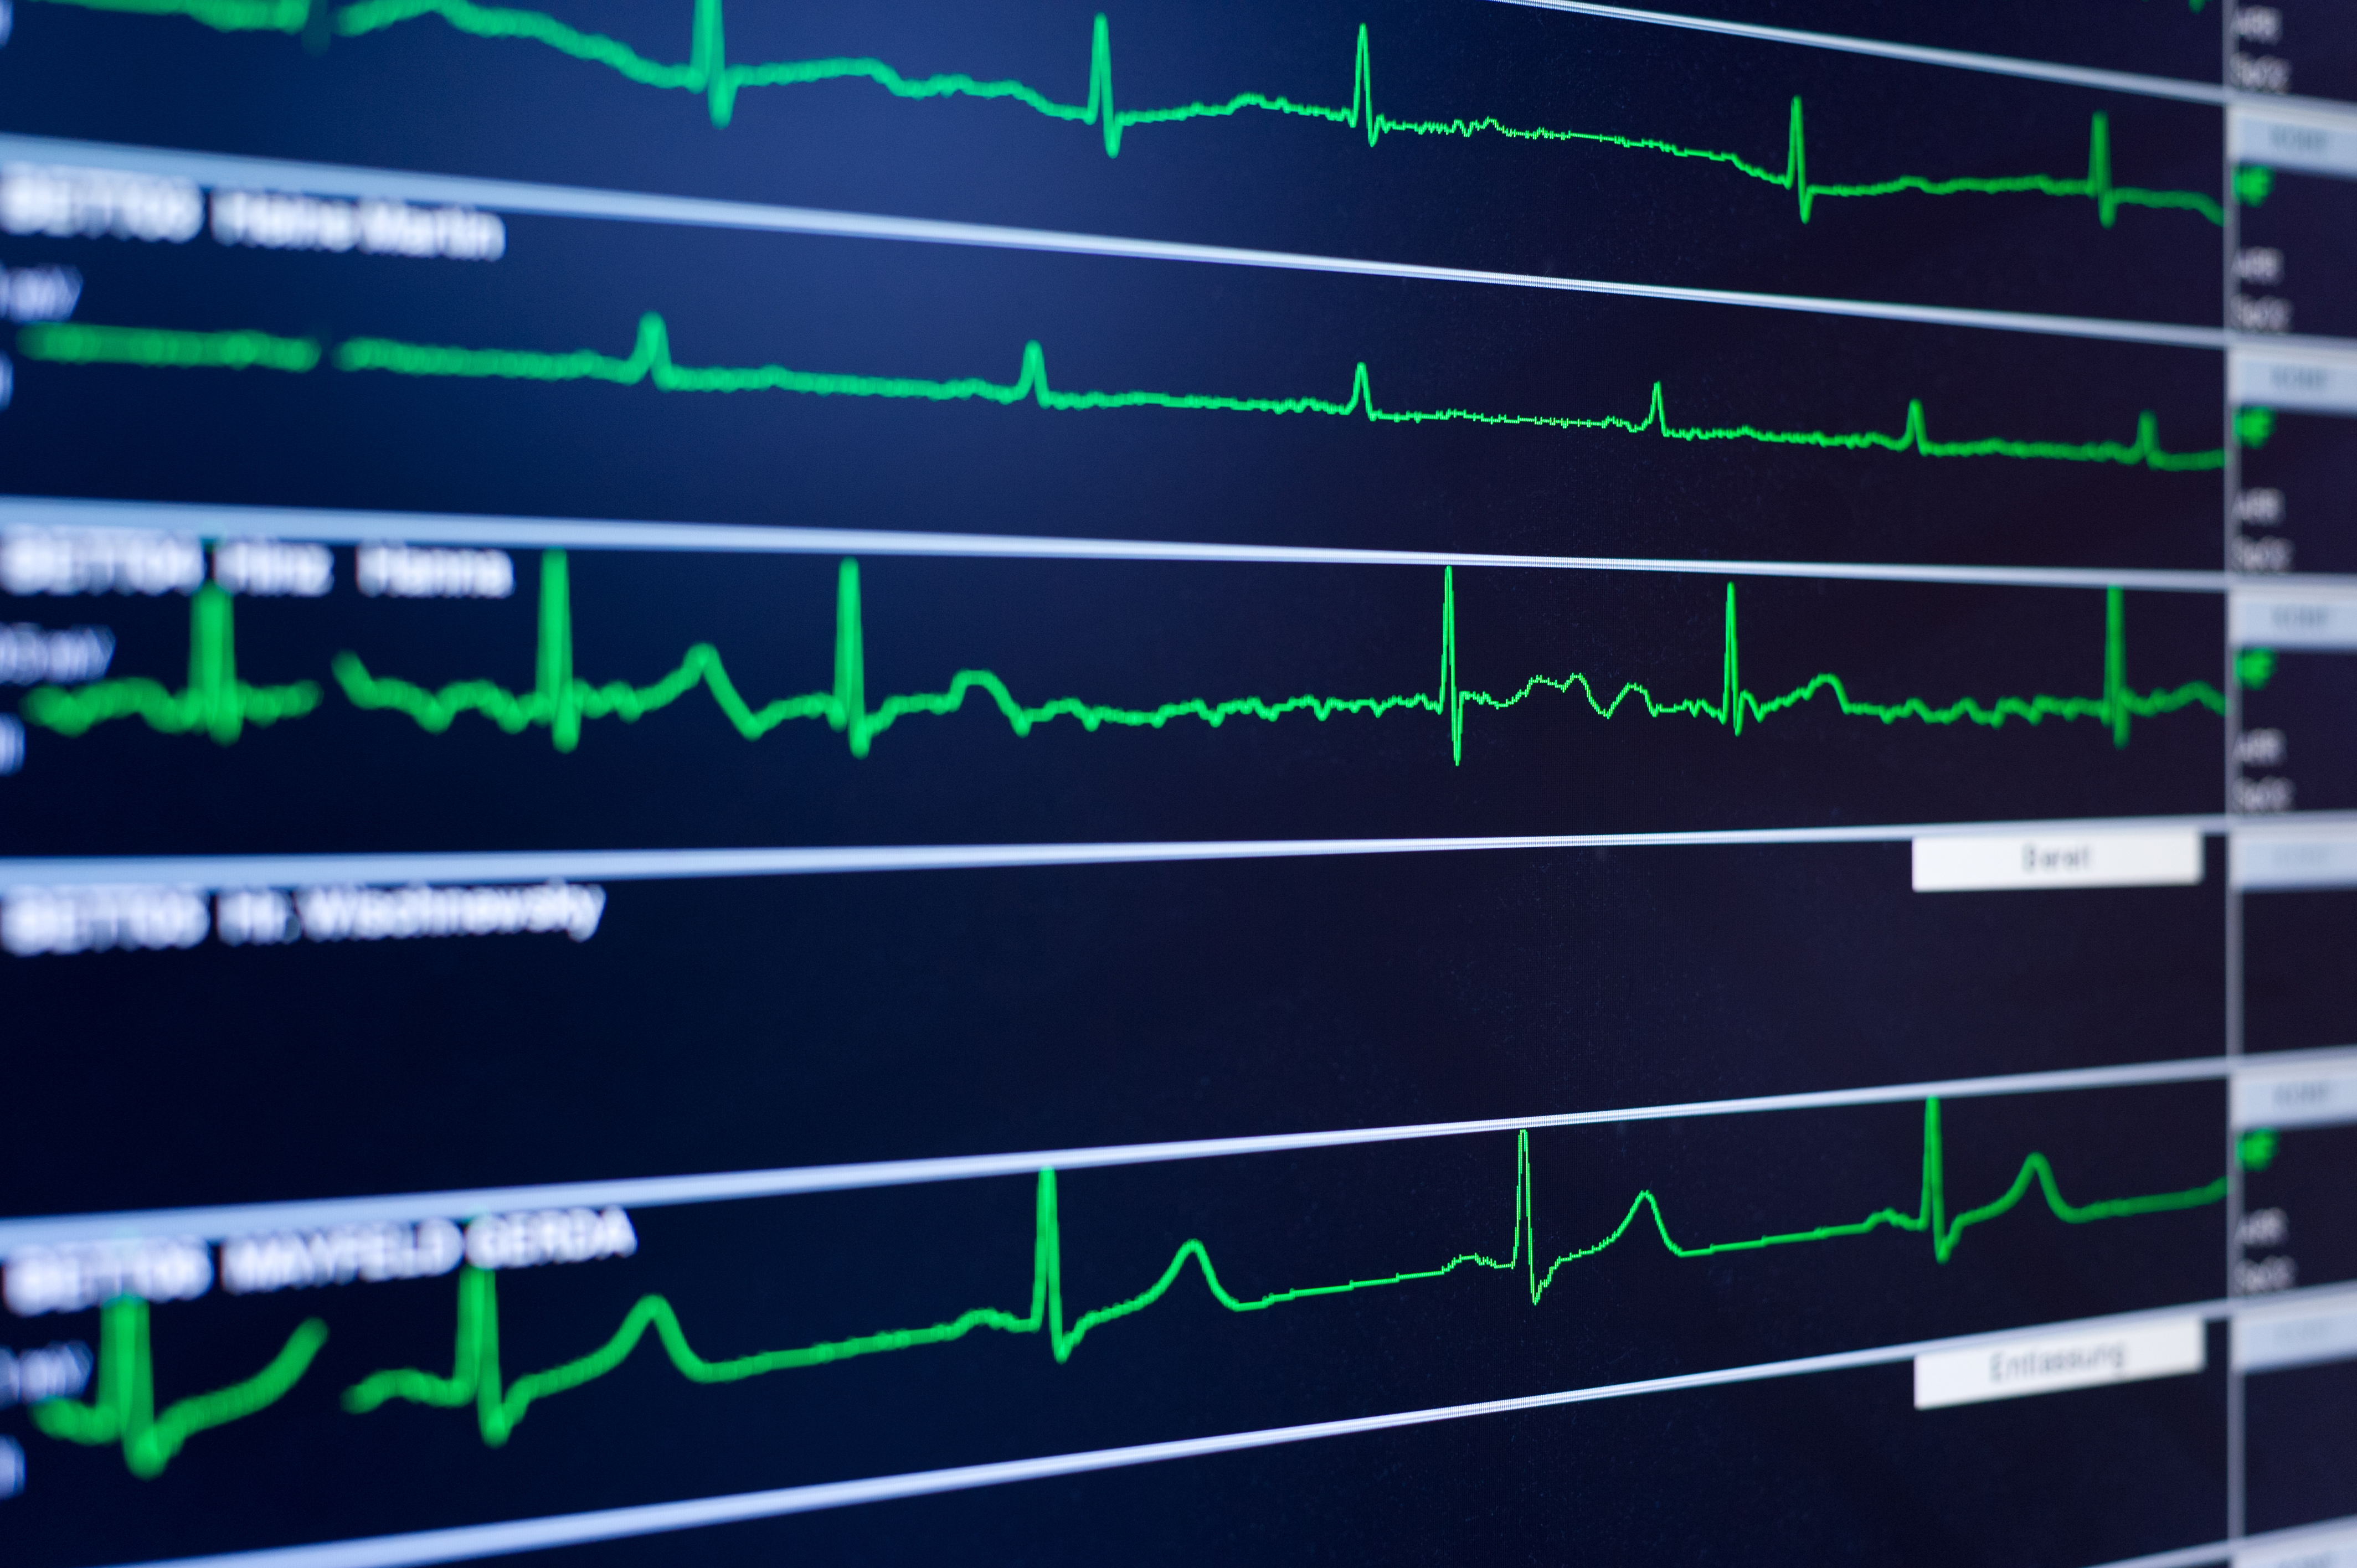 Having A Low Heart Rate Is Linked To Being A Criminal: Study | Time